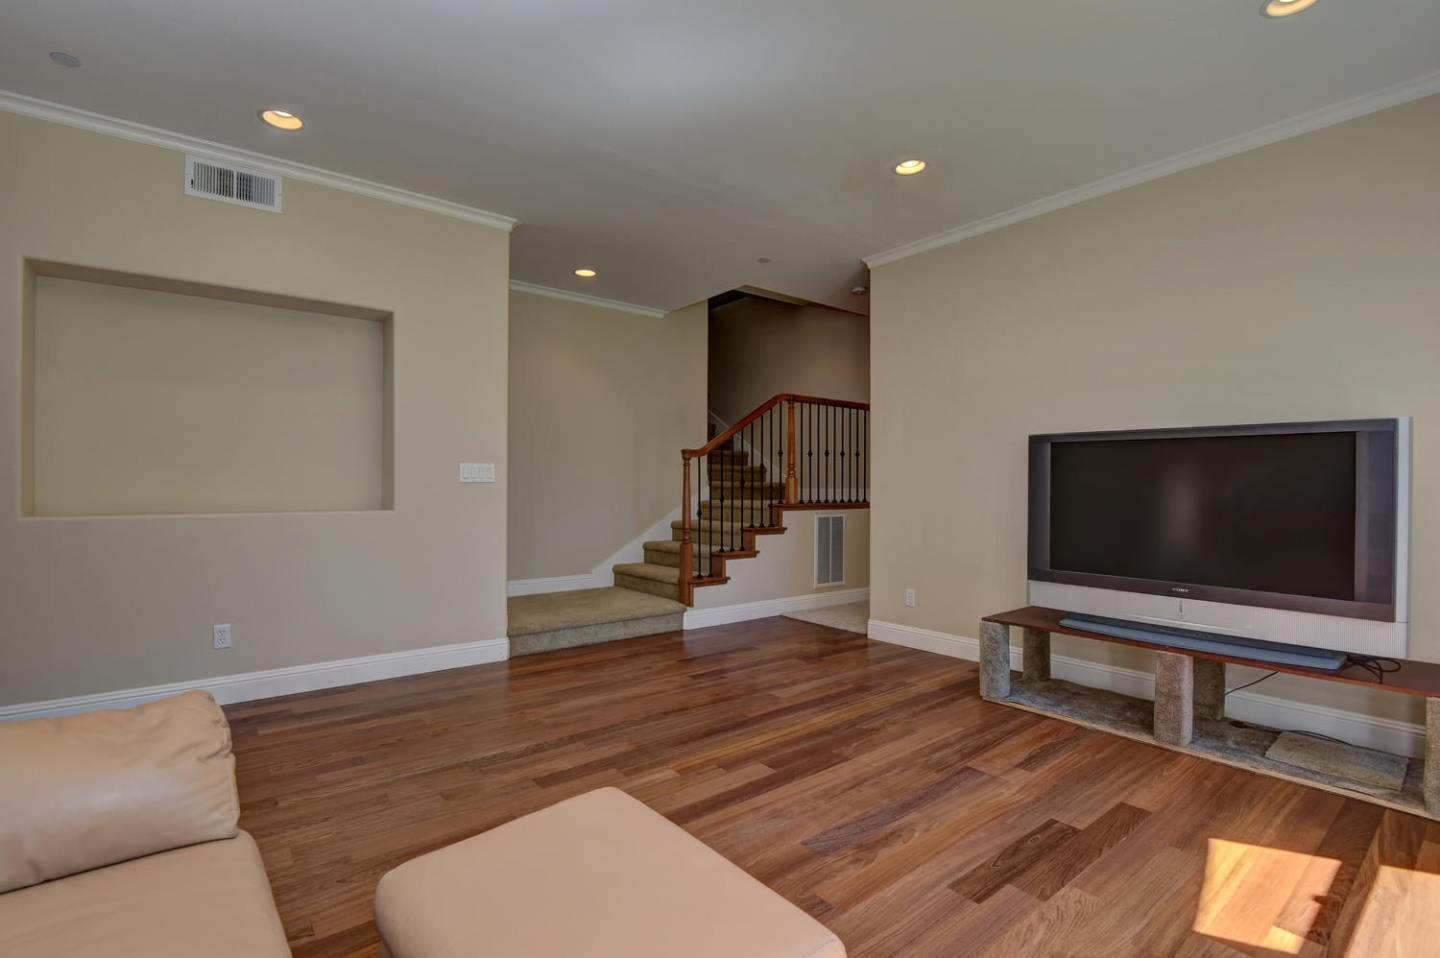 Additional photo for property listing at 337 Thin Edge Rd  SANTA CRUZ, CALIFORNIA 95065